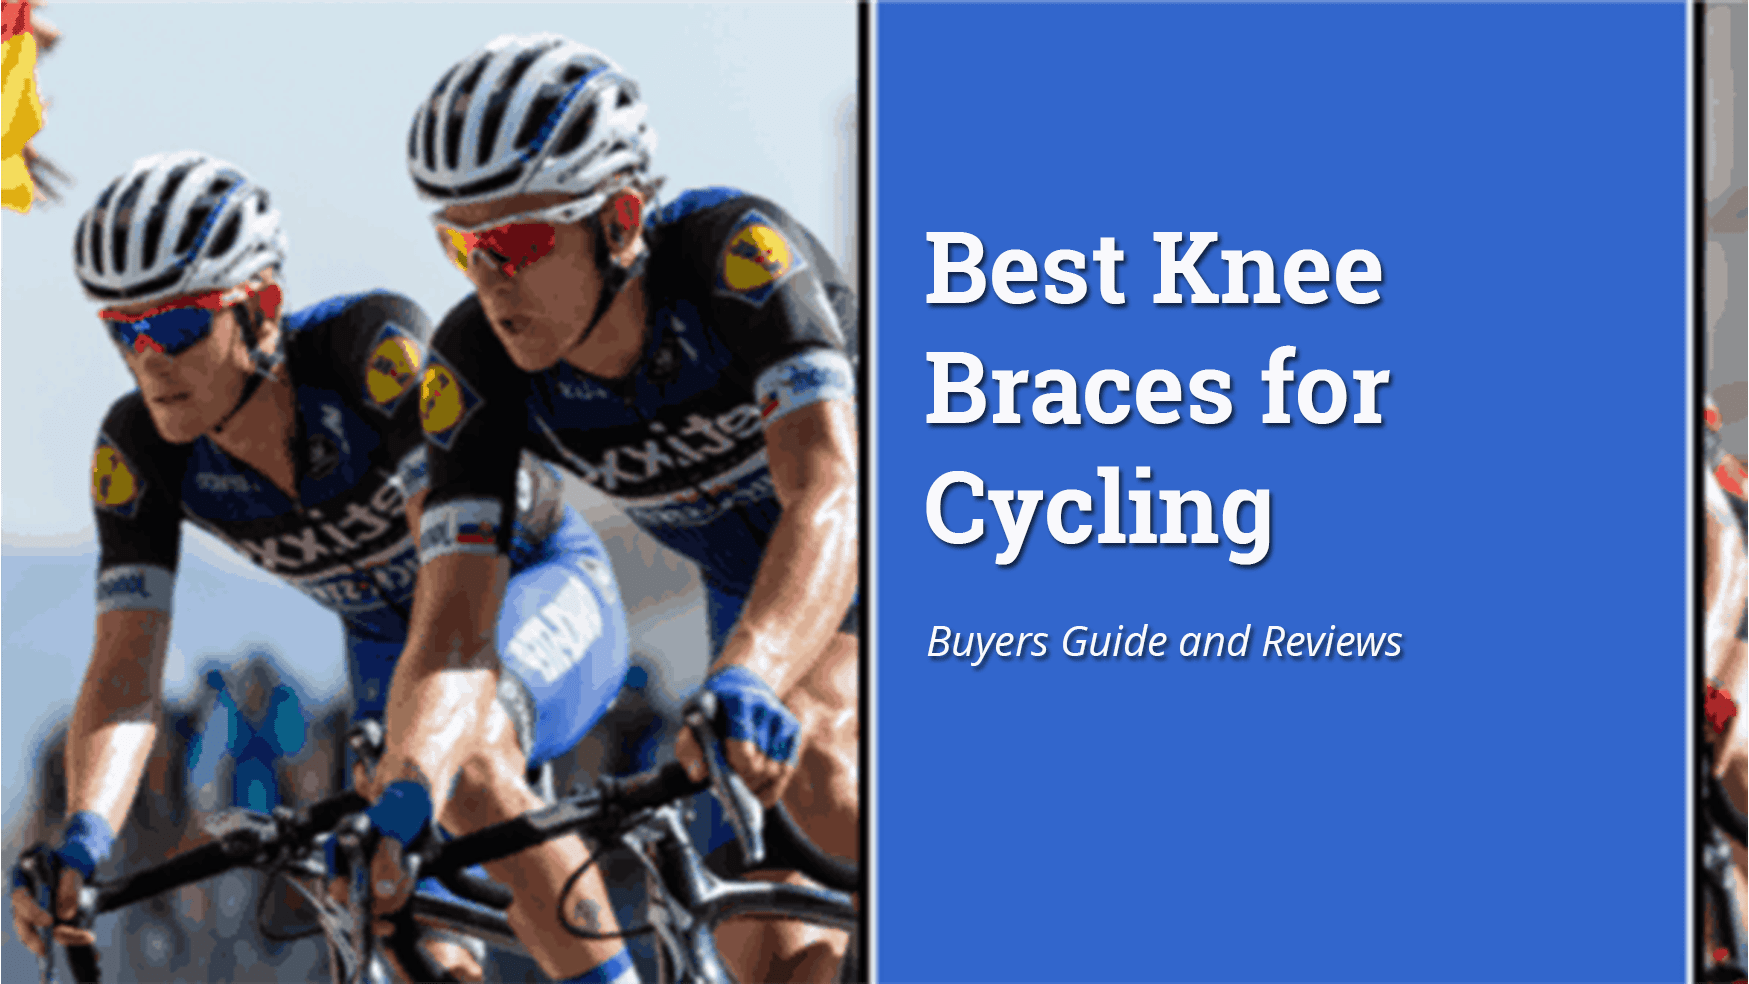 Best Knee Braces for Cycling